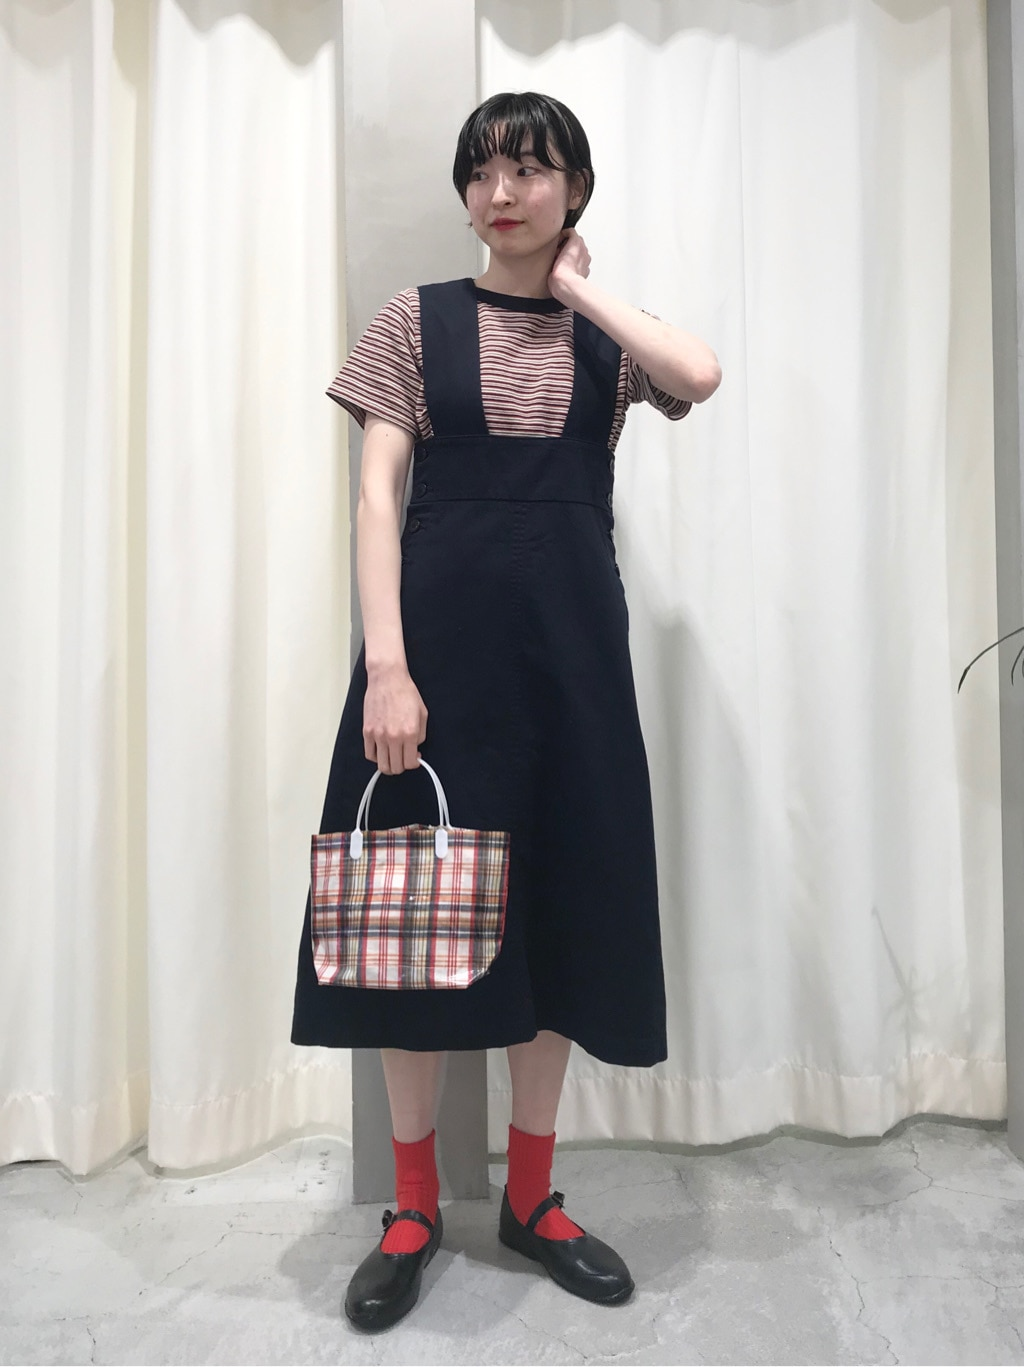 Dot and Stripes CHILD WOMAN ルミネ池袋 身長:163cm 2020.07.30